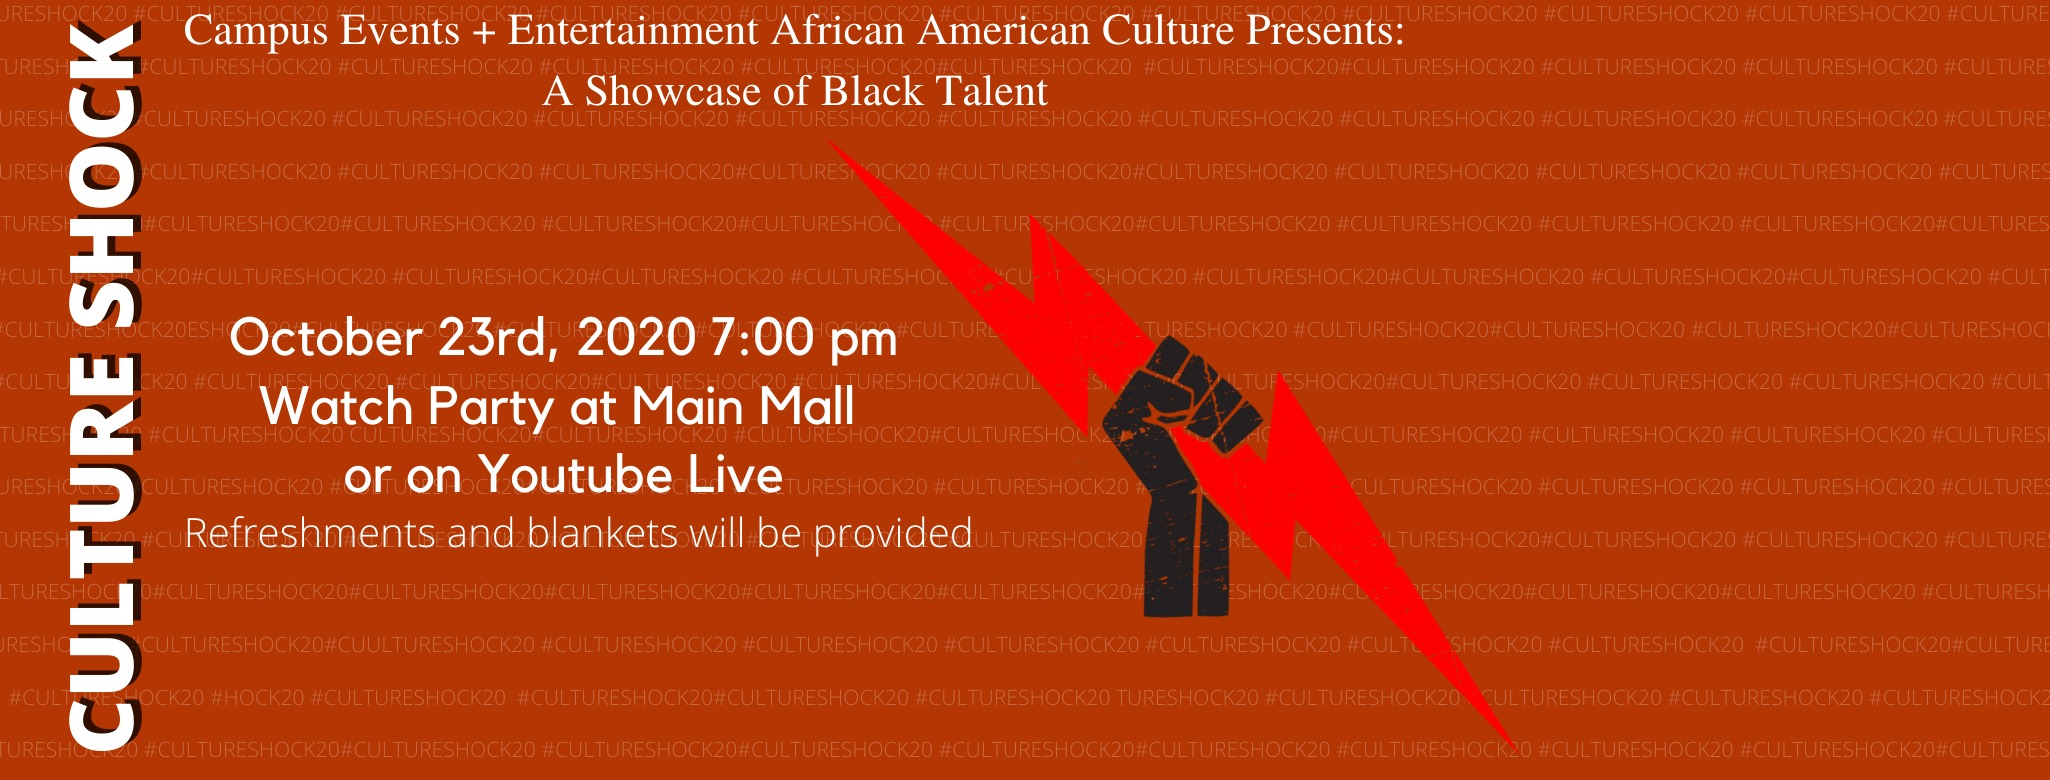 Culture Shock is a showcase of Black Talent on October 23rd